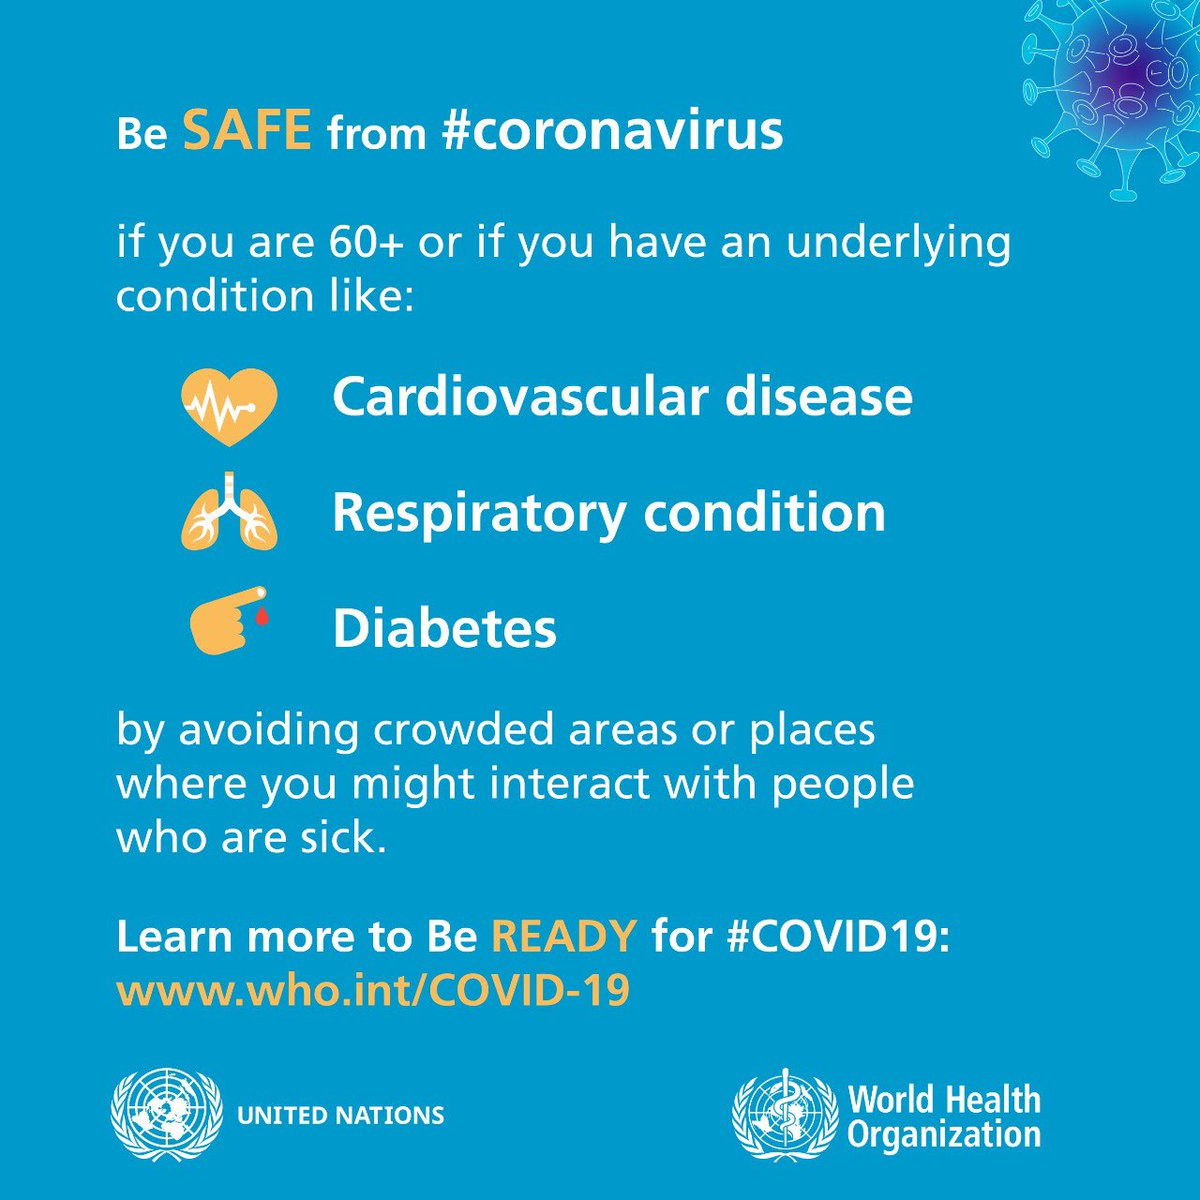 If you are 60+ or if you have an underlying condition like:  - cardiovascular disease  - Respiratory condition  - Diabetes  Avoid crowded areas or places where you might interact with people who are sick.   #BeSafe from #Coronavirus. @WHO https://t.co/ctjtENCgKm